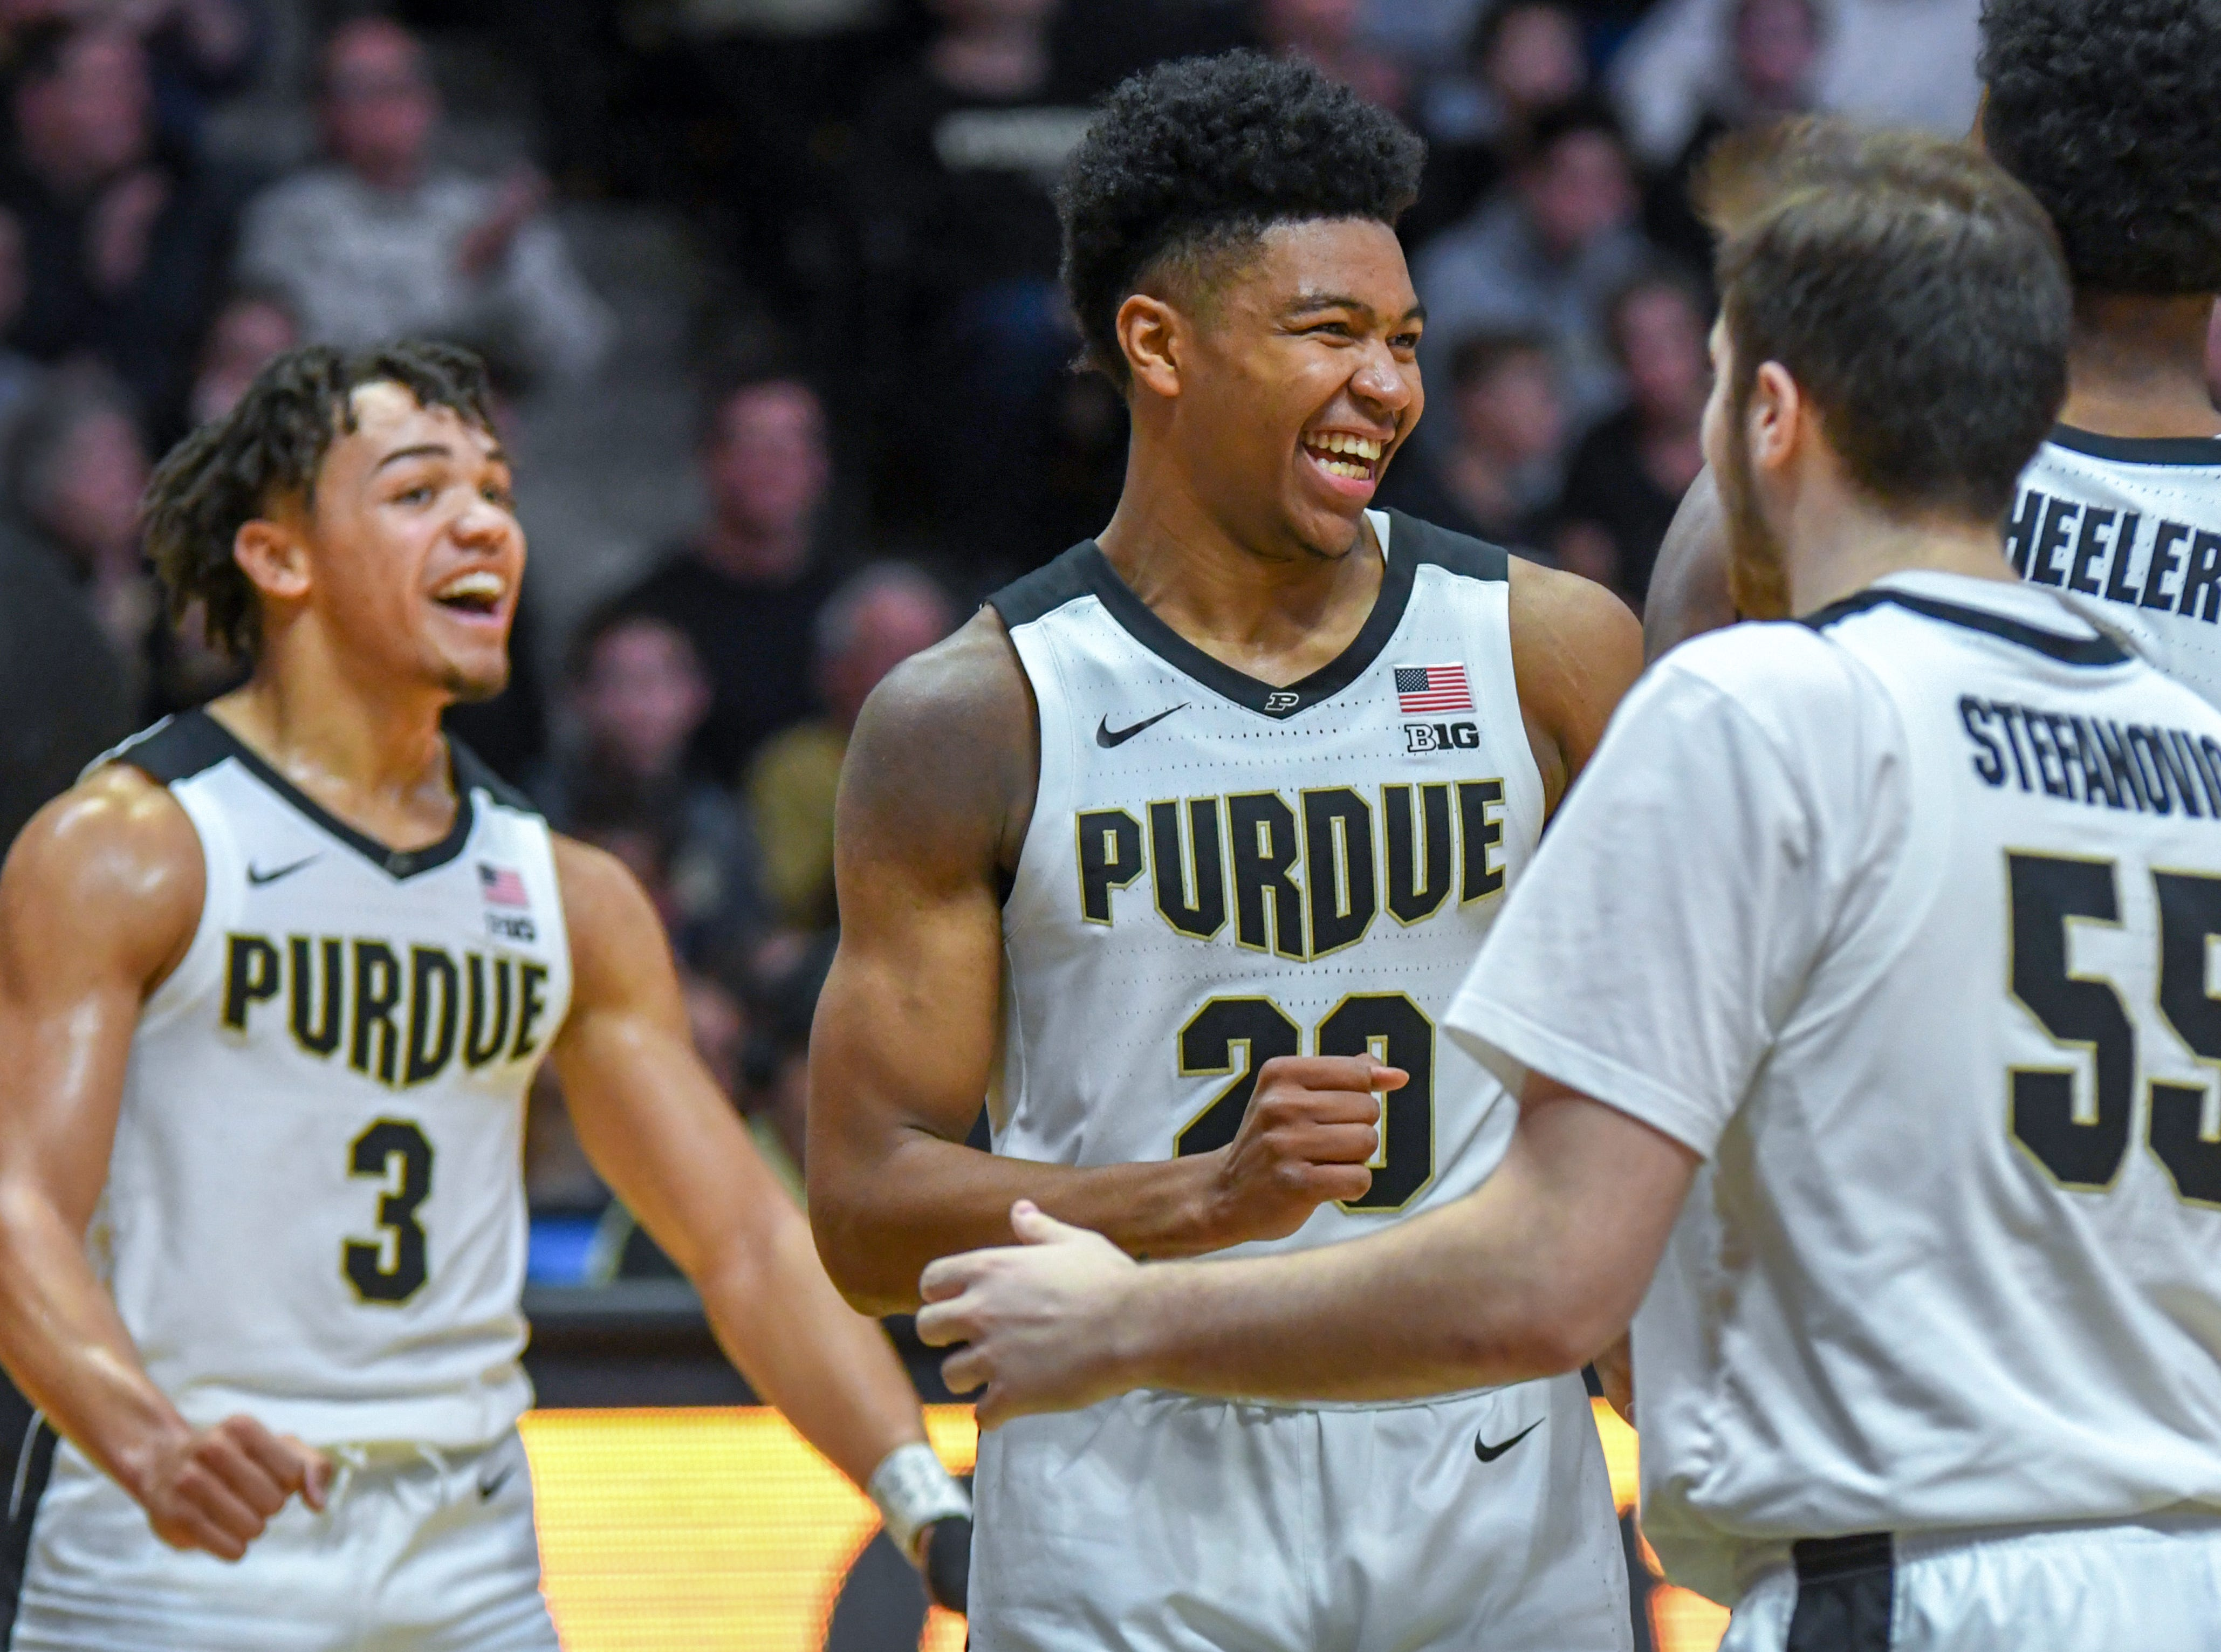 Action from Purdue's 89-54 win over Rutgers at Purdue University in West Lafayette on January 15, 2019. Carsen Edwards, Nojel Eastern and Sasha Stefanovic.